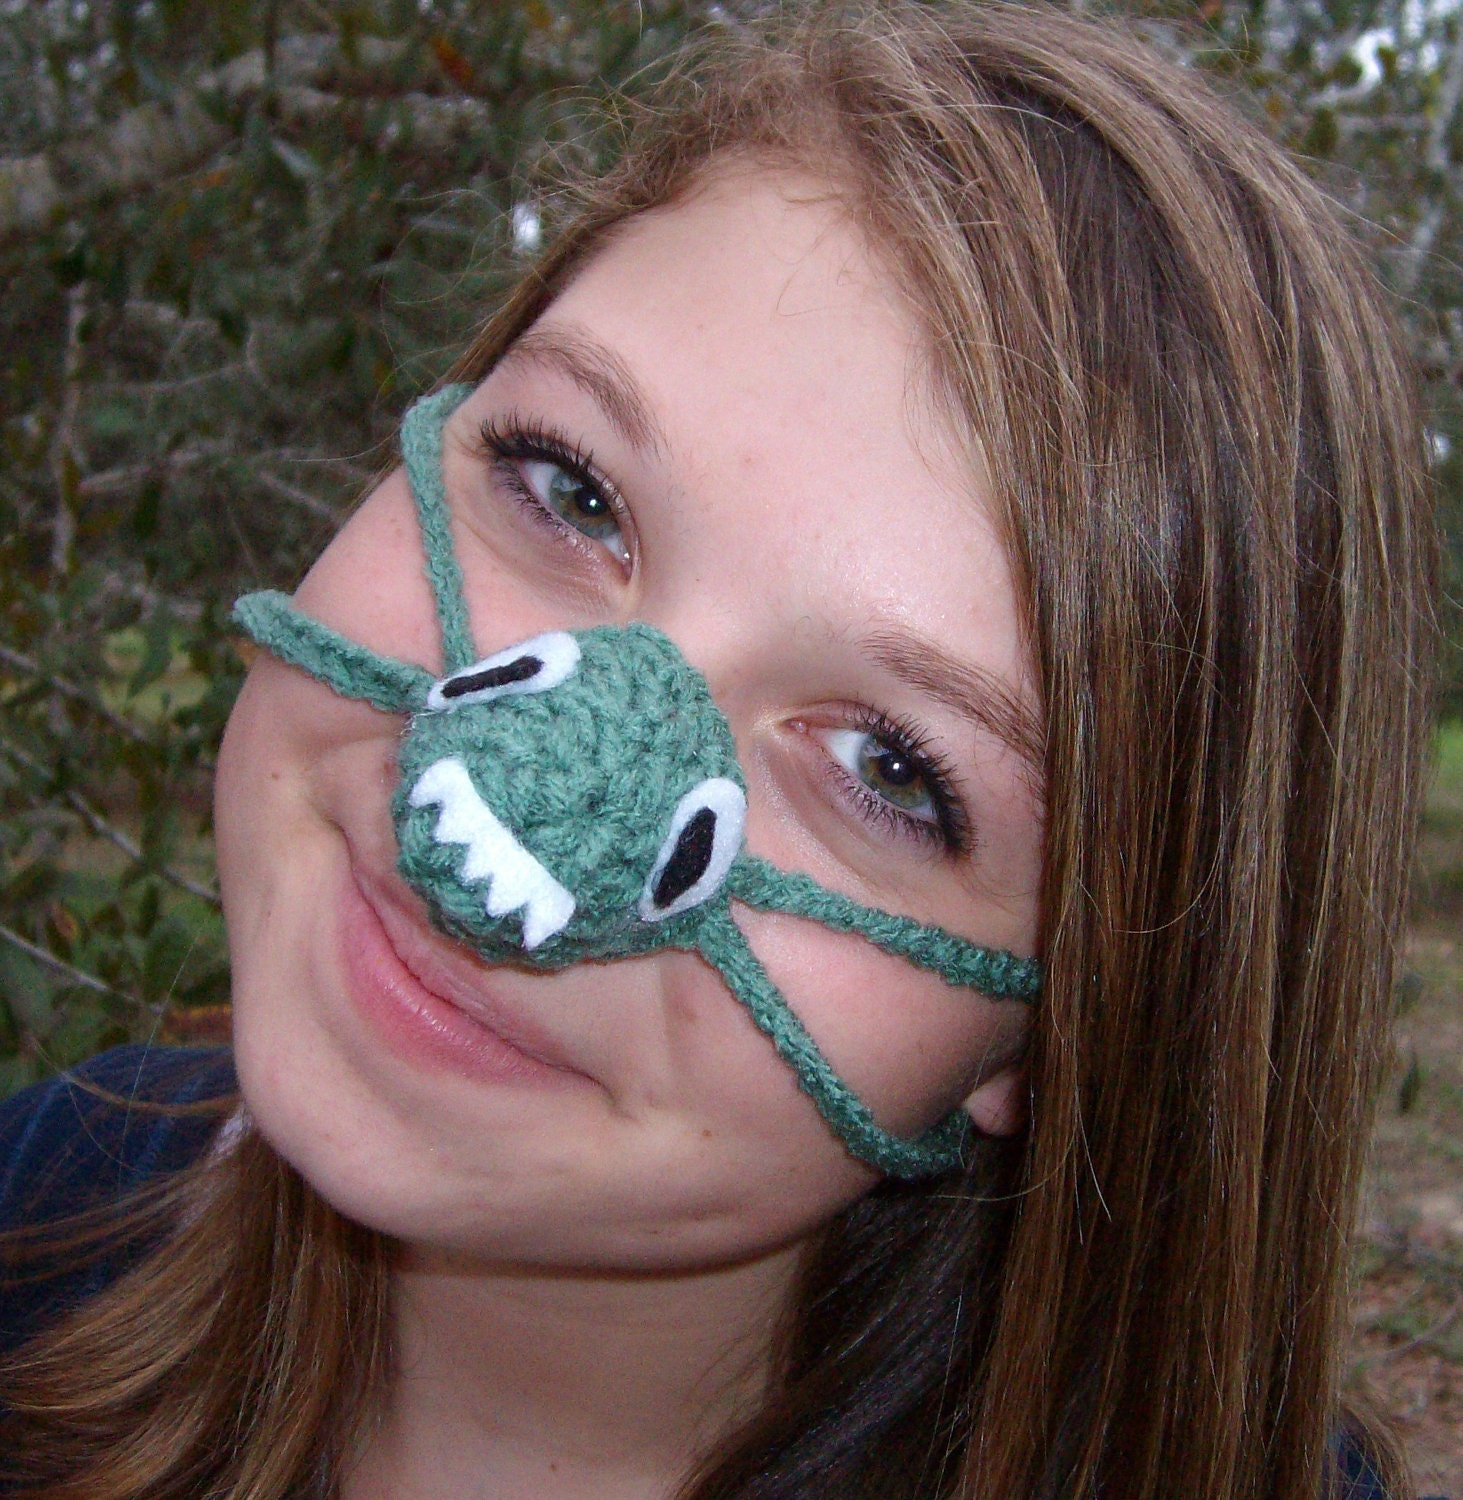 Crochet Nose Warmer : Green Monster Nose Warmer Fun Nose Cozy by auntmartymadeit on Etsy